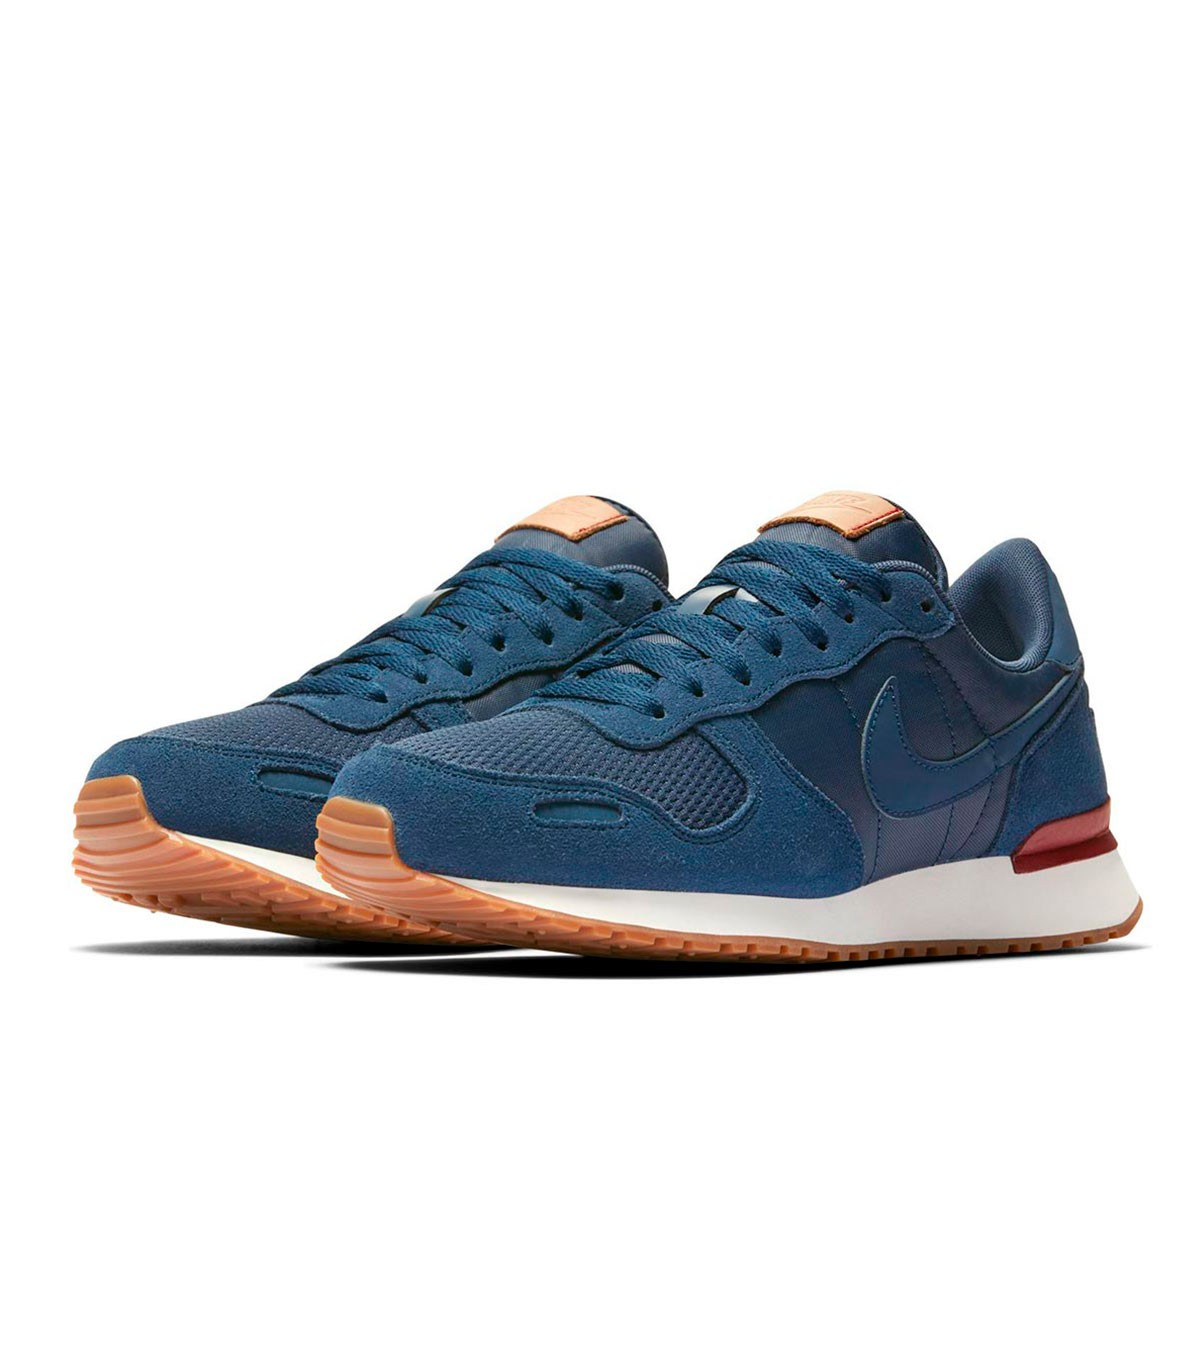 368f8e68c27 Zapatillas Nike Air Vortex